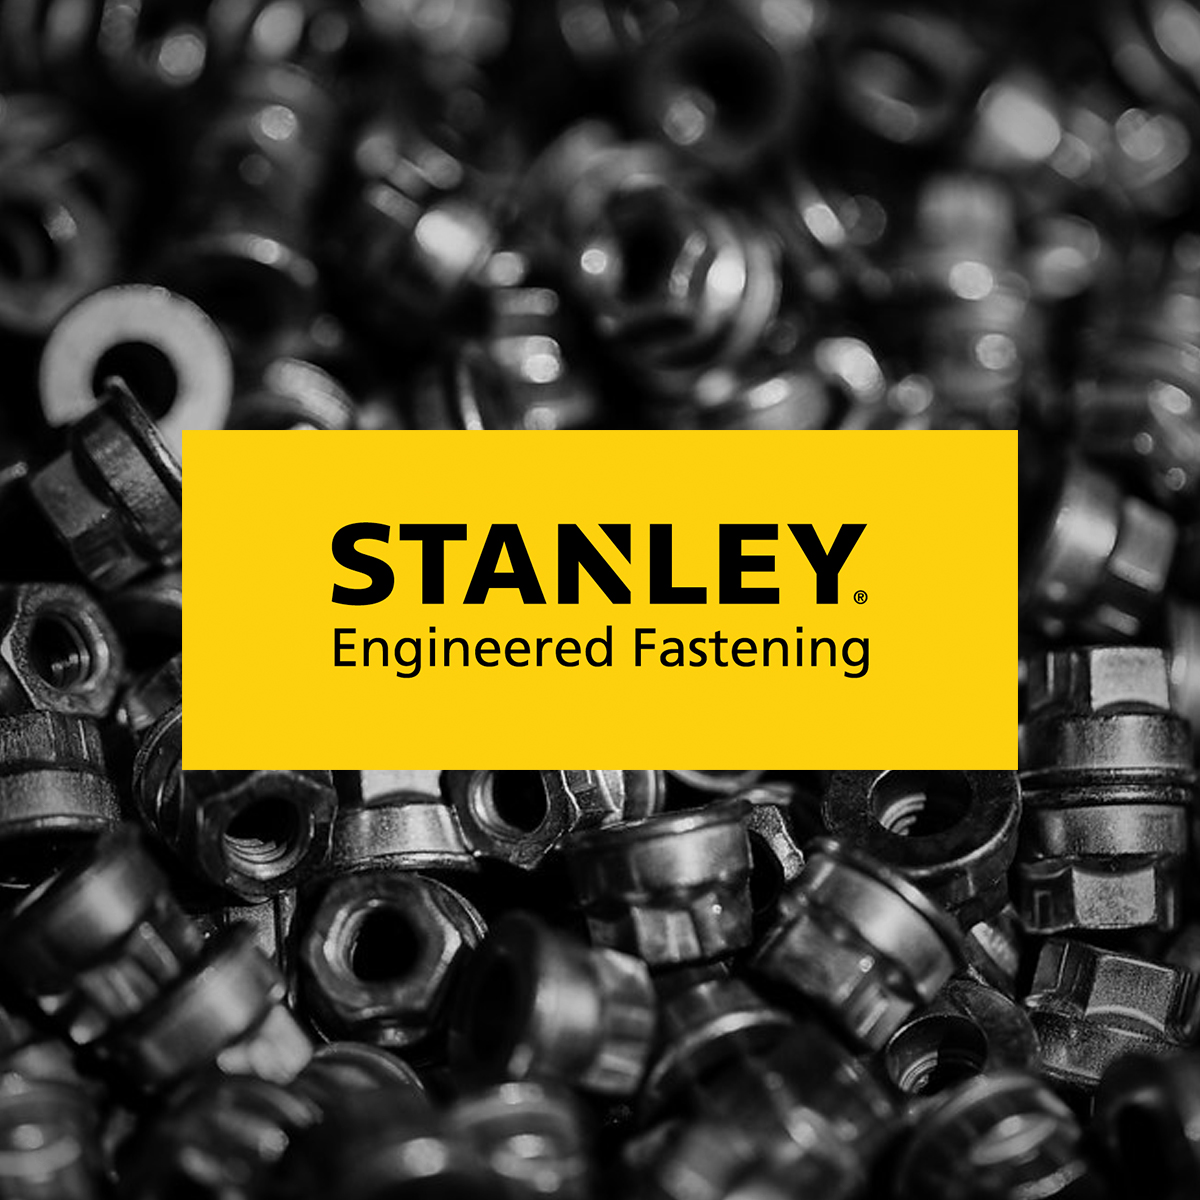 STANLEY® Engineered Fastening | Precision Fastening and